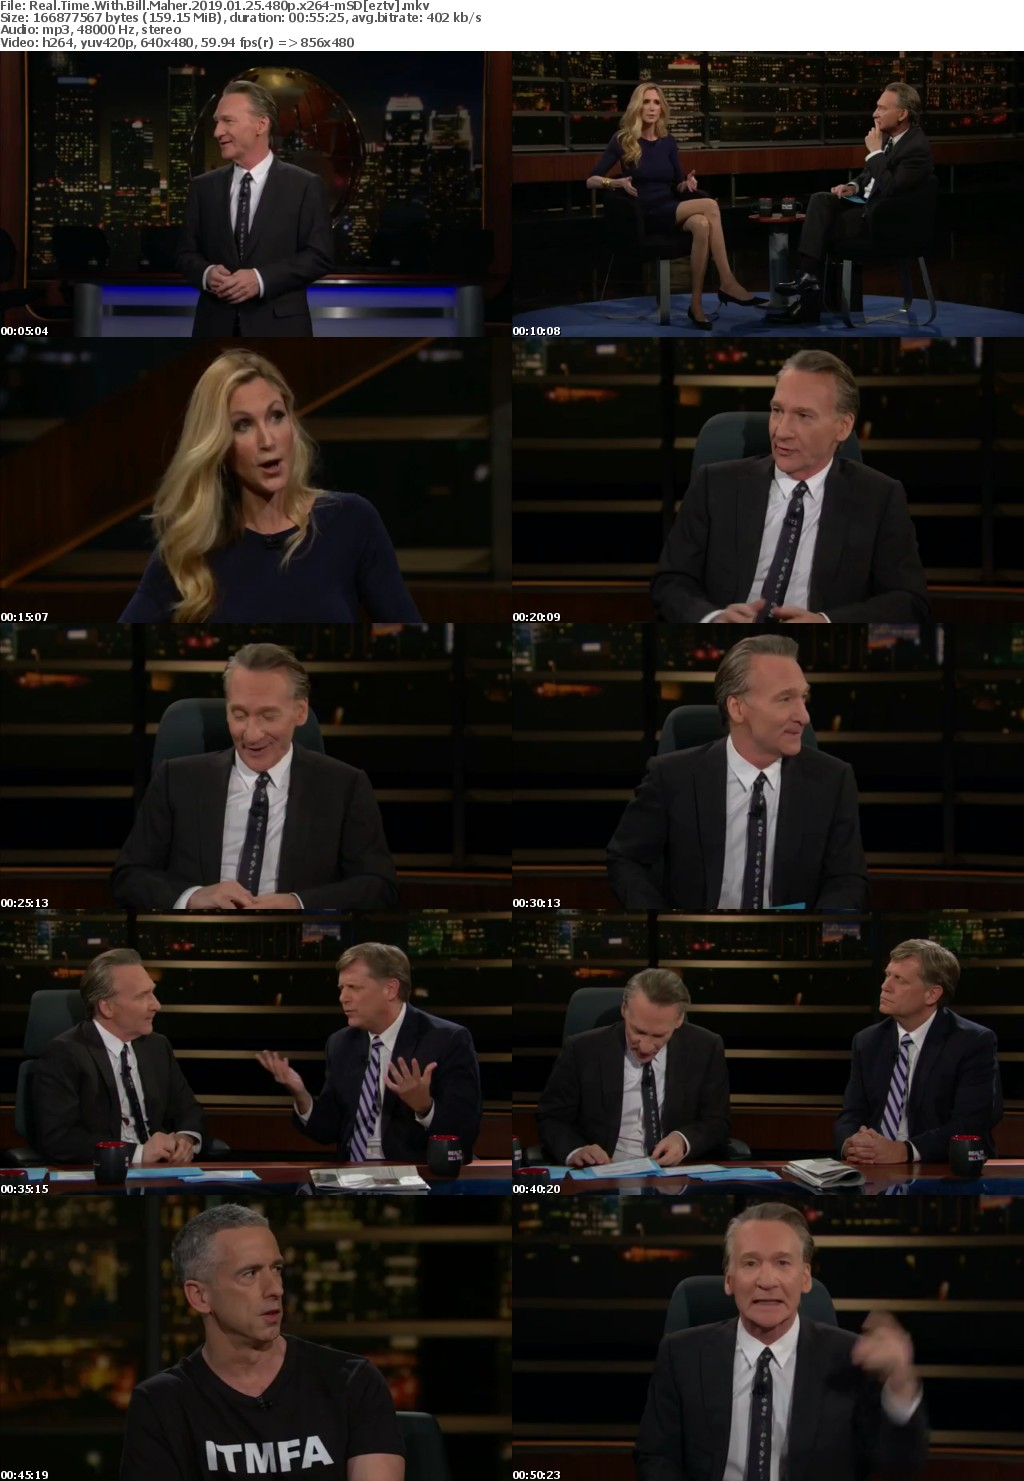 Real Time With Bill Maher (2019) 01 25 480p x264-mSD